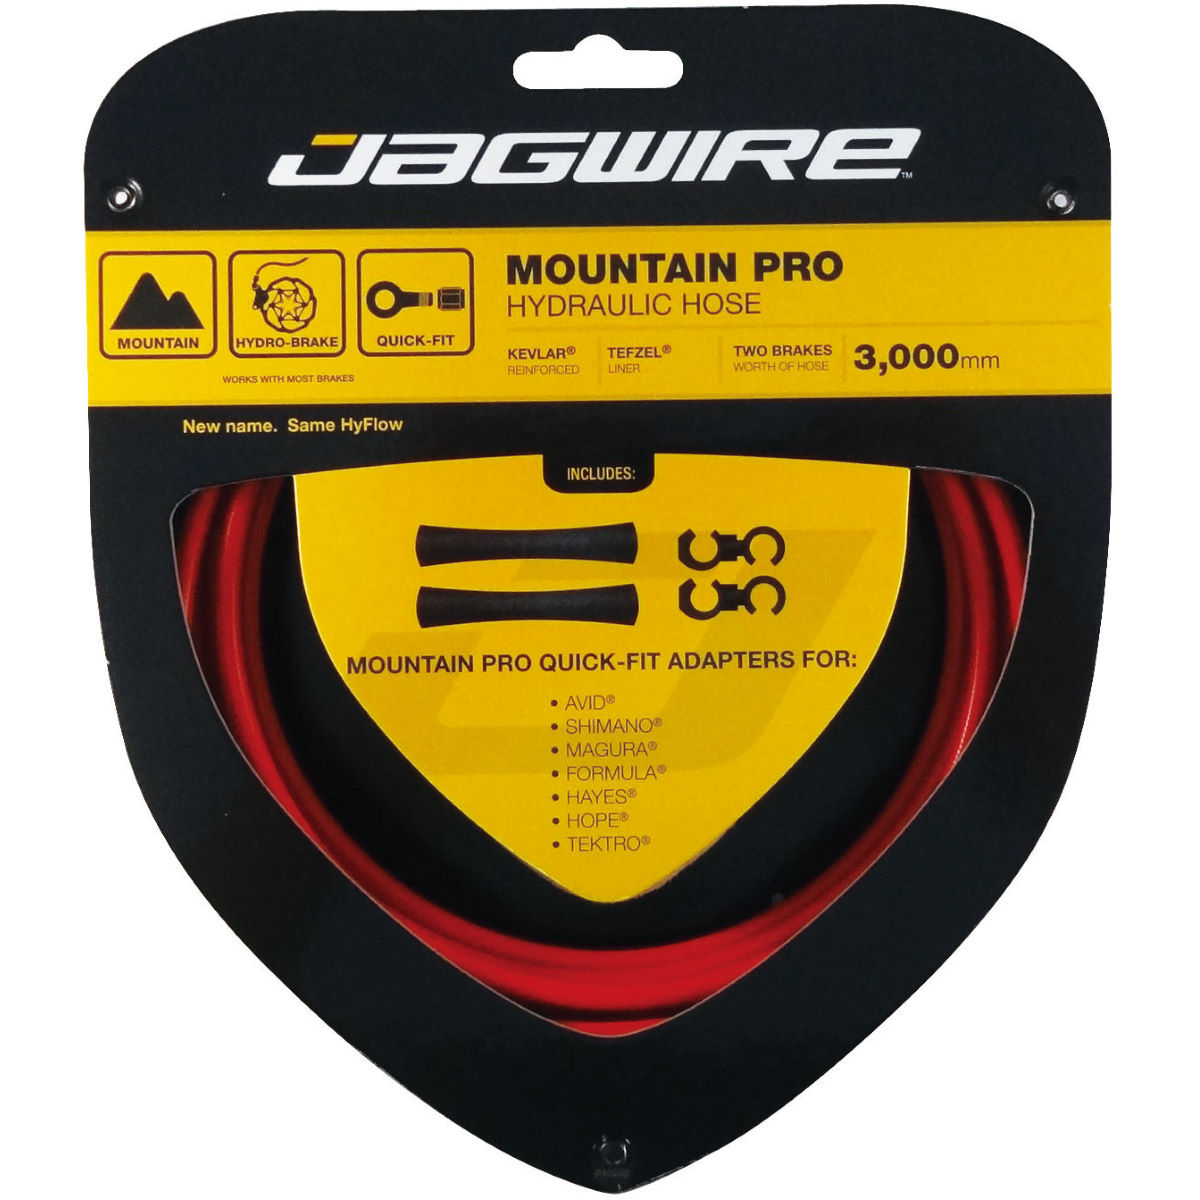 Jagwire Mountain Pro Hydraulic Hose - Cables de freno